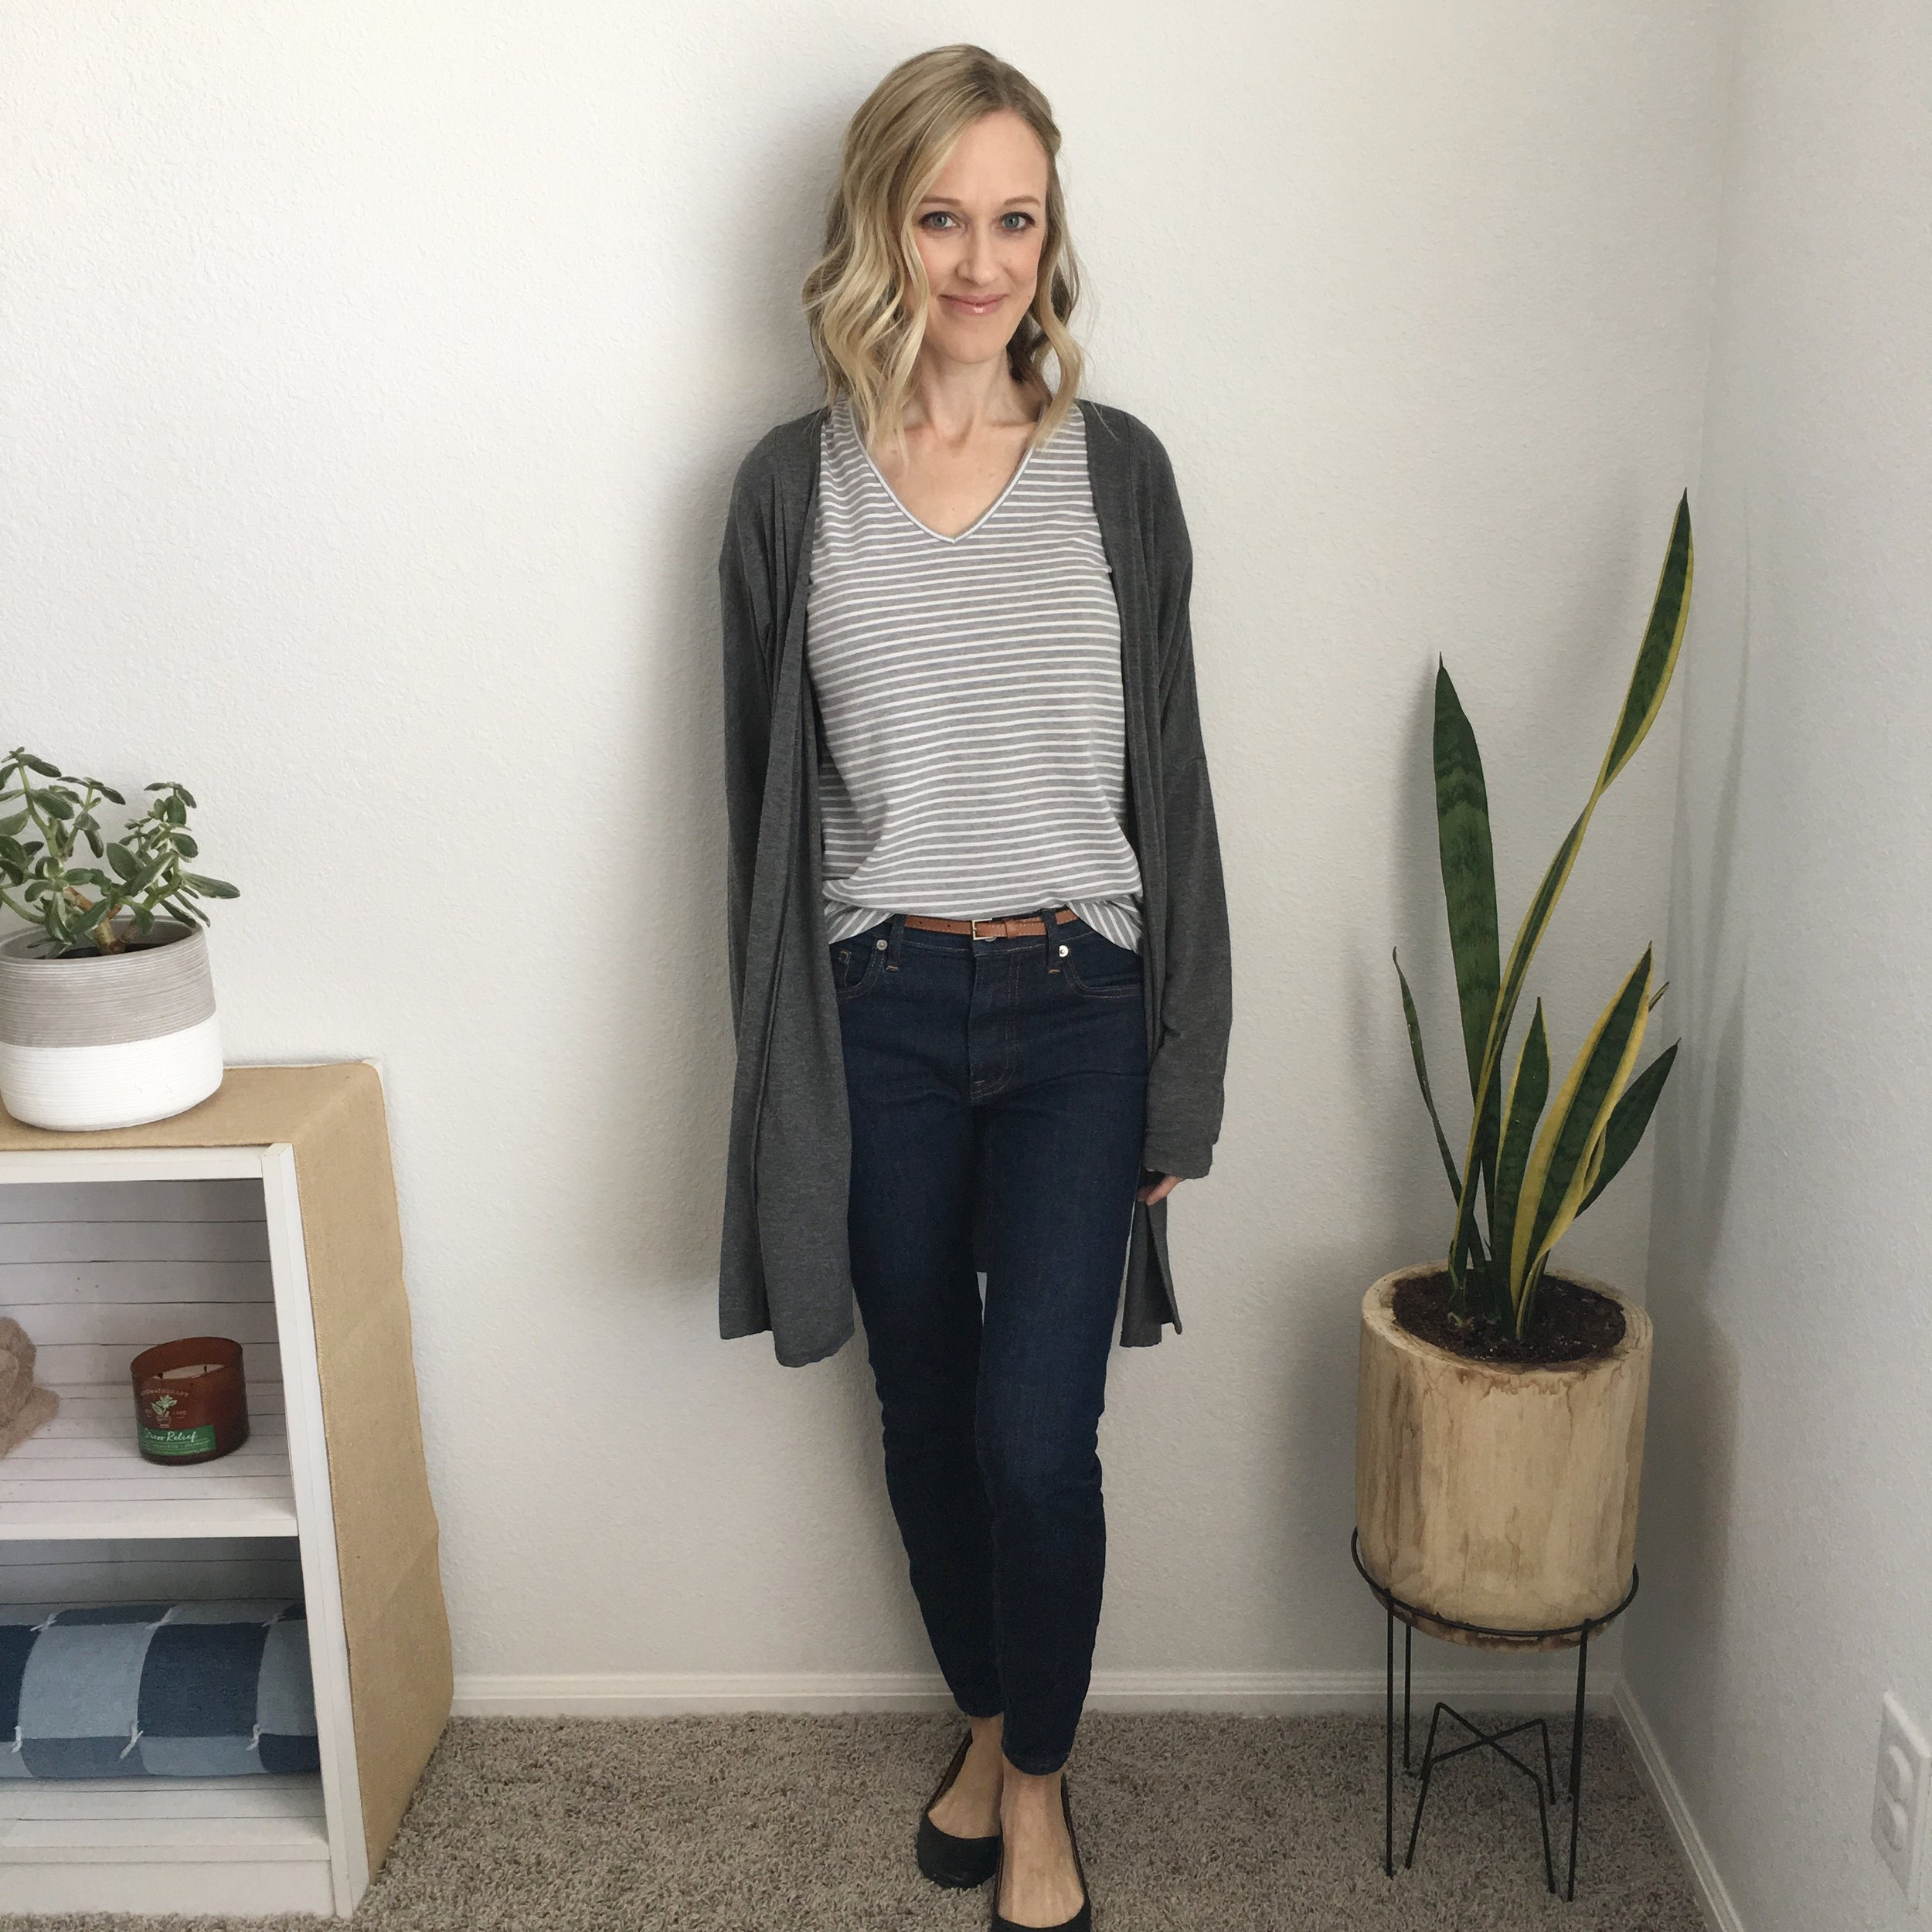 Spring fashion style: ethical brands & sustainable clothing